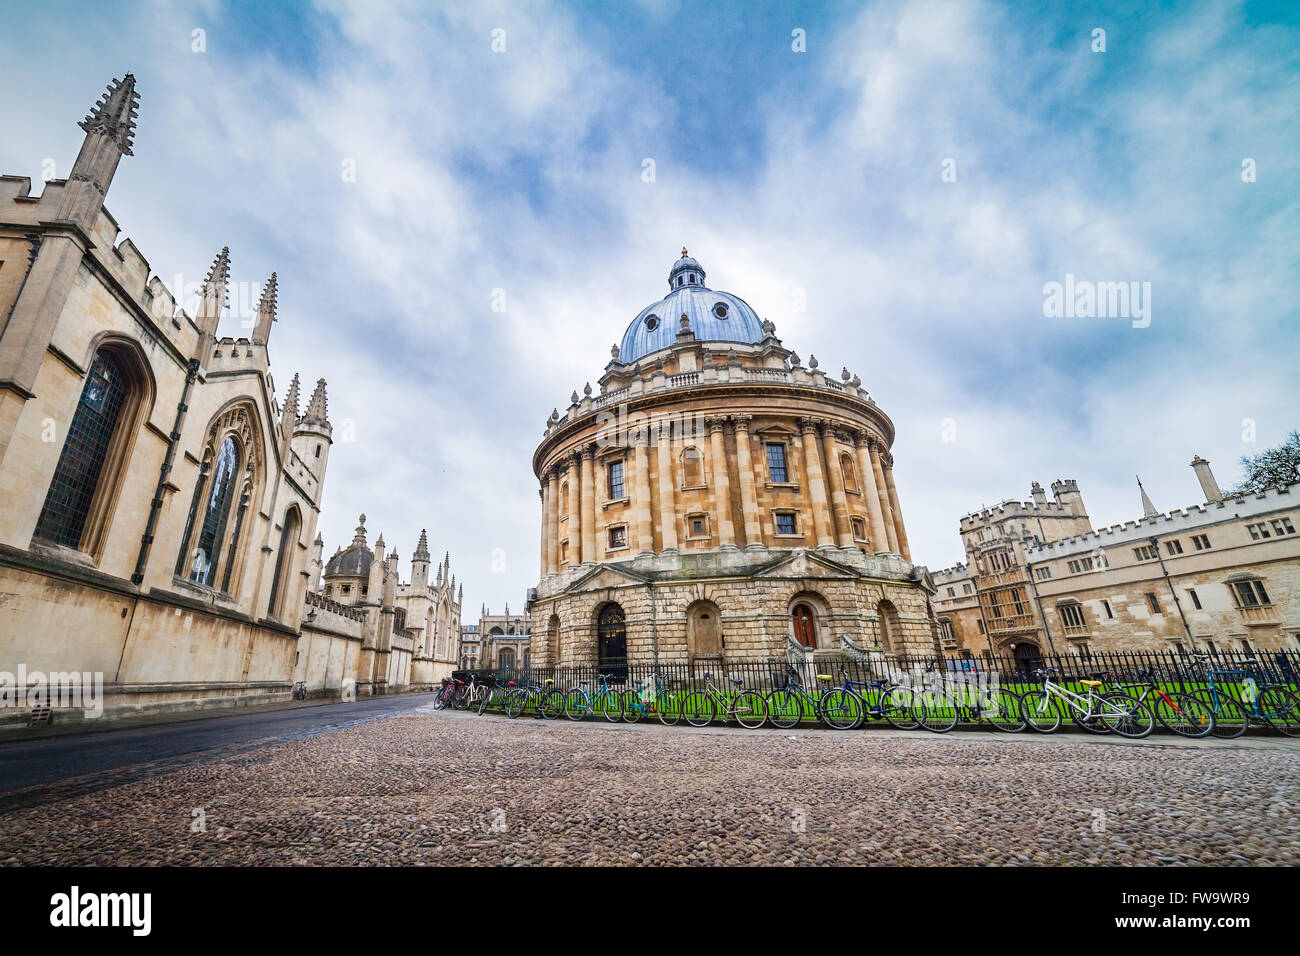 The Radcliffe Camera Library , Building of Oxford University, United Kingdom - Stock Image